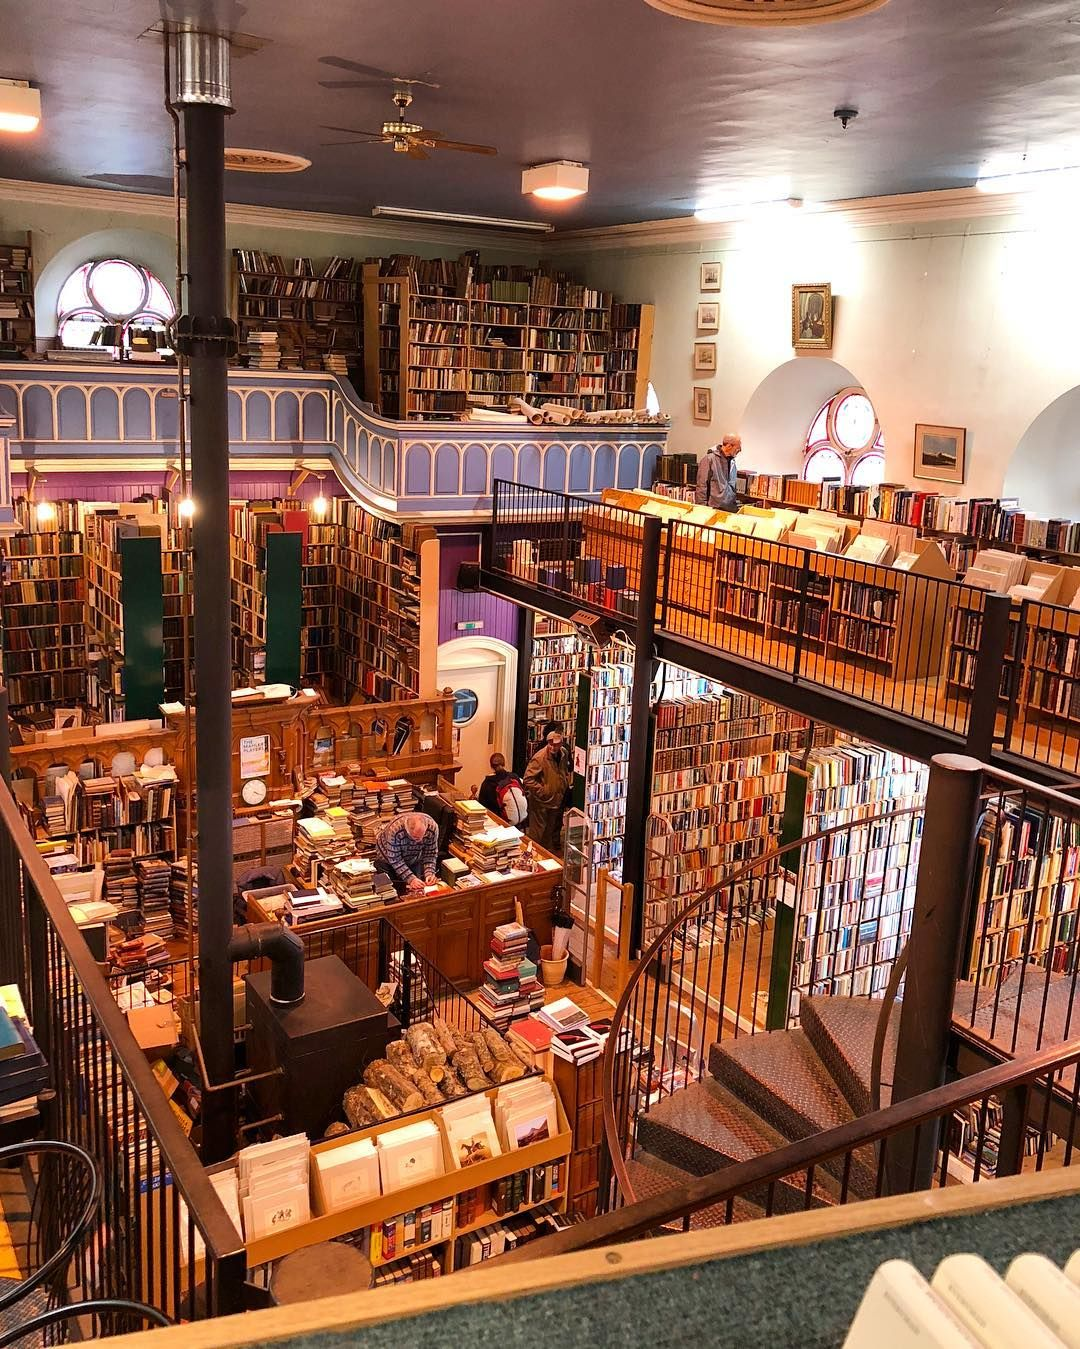 Moves To Inverness For Its Bookstore In An Old Church Regram Via Alex Mathews Old Church Bookstore Inverness